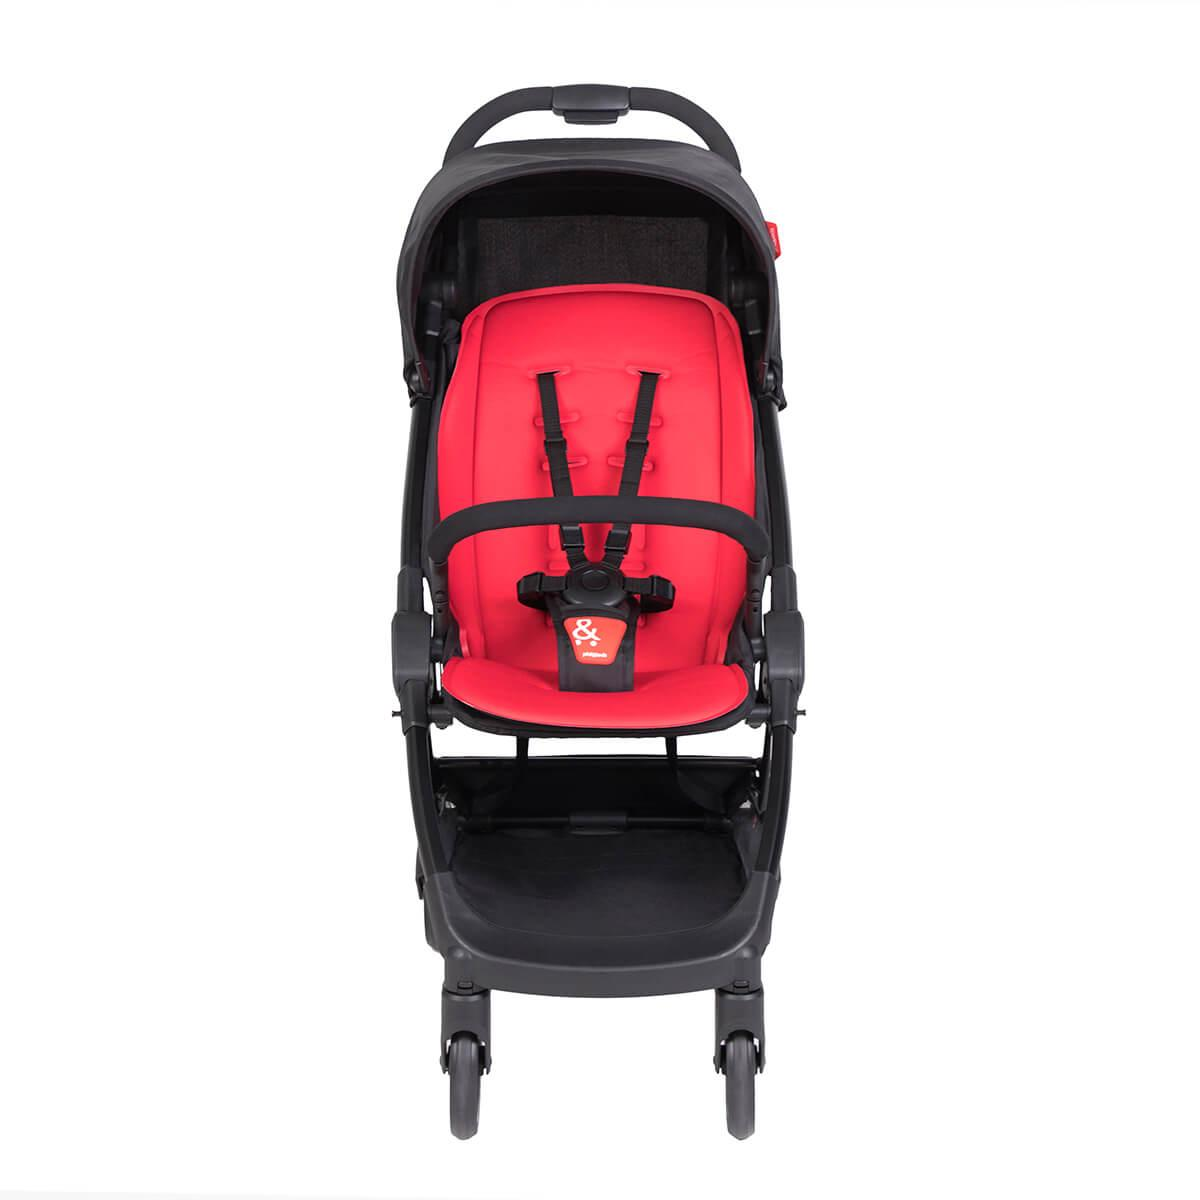 SILLA PHIL AND TEDS GO BUGGY V1 CHERRY-88333.2.0-0